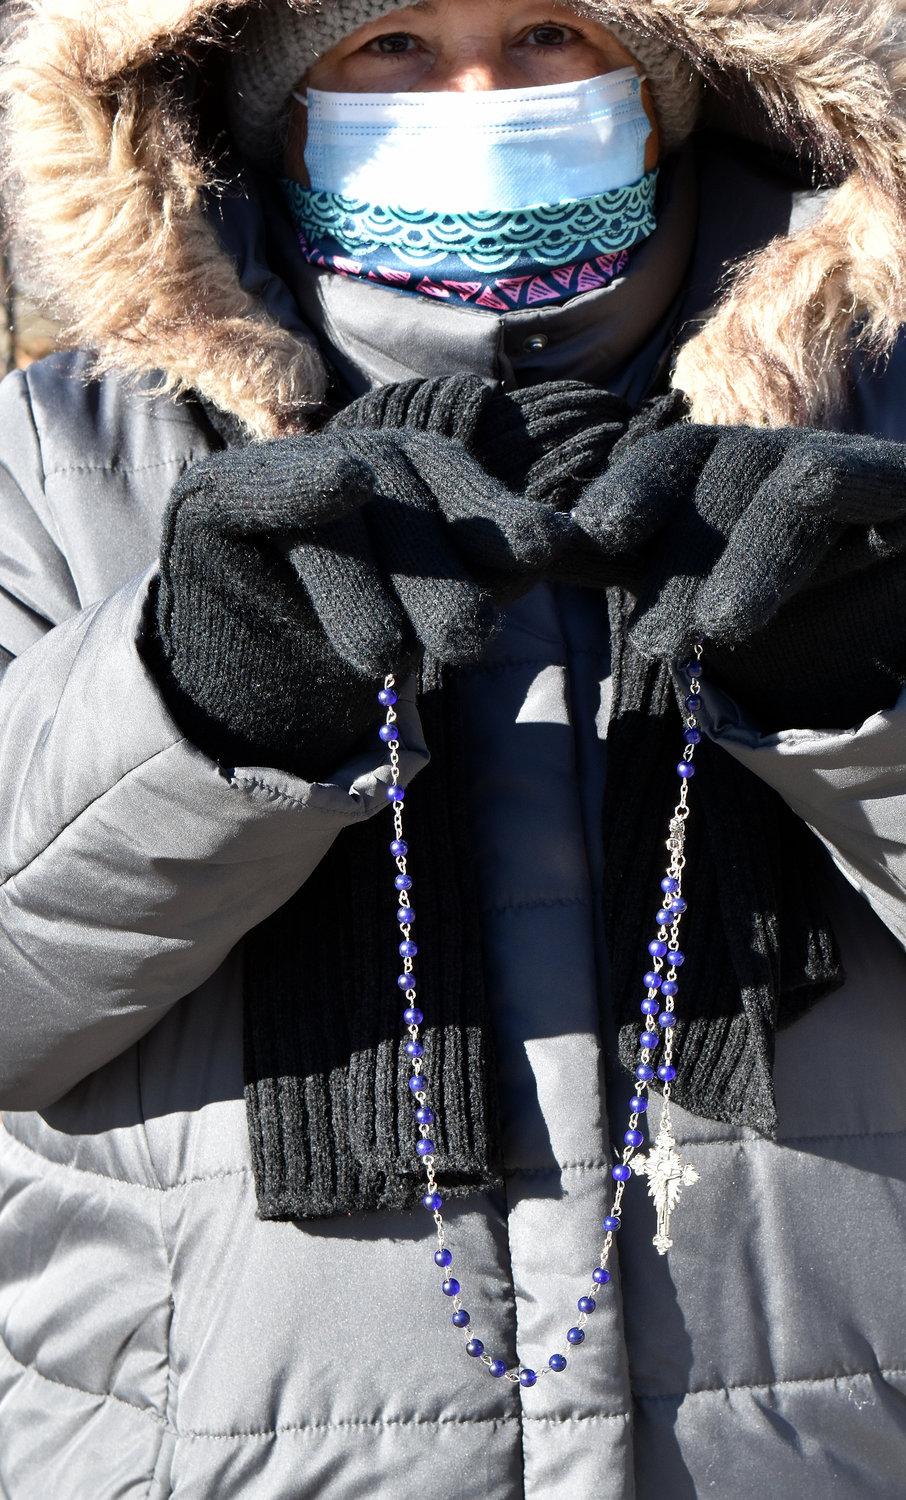 A woman braves frigid conditions Jan. 30 to pray the Rosary for the intention of Respect for Life near an abortion clinic at Eastchester Road in the Bronx.